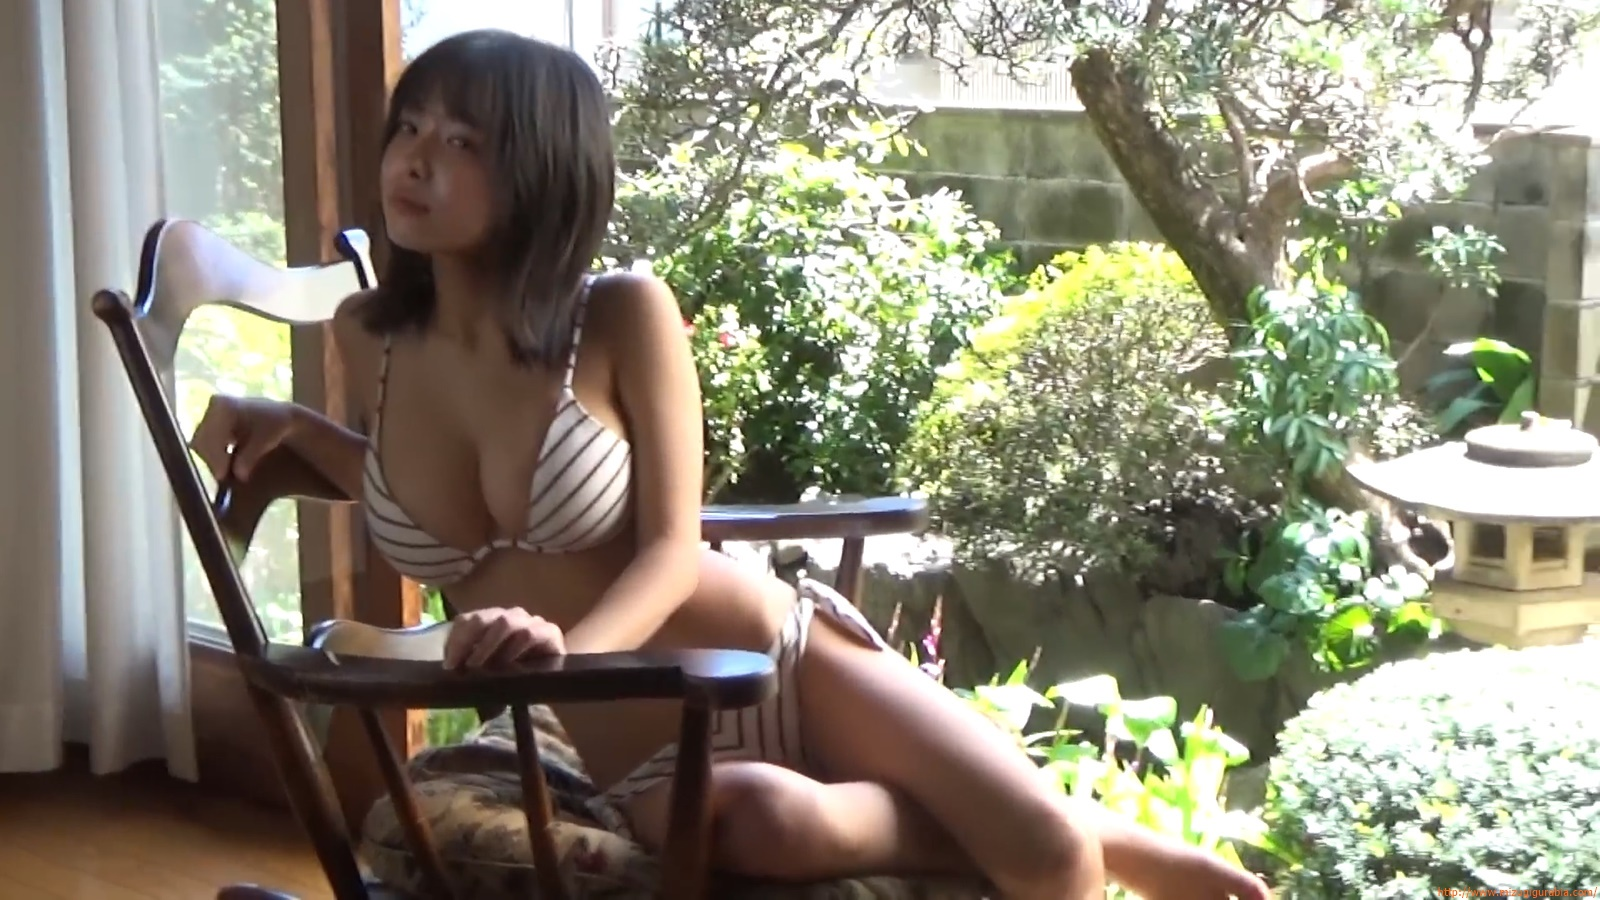 The gravure that makes all Japan cheer up Rio Teramoto 010